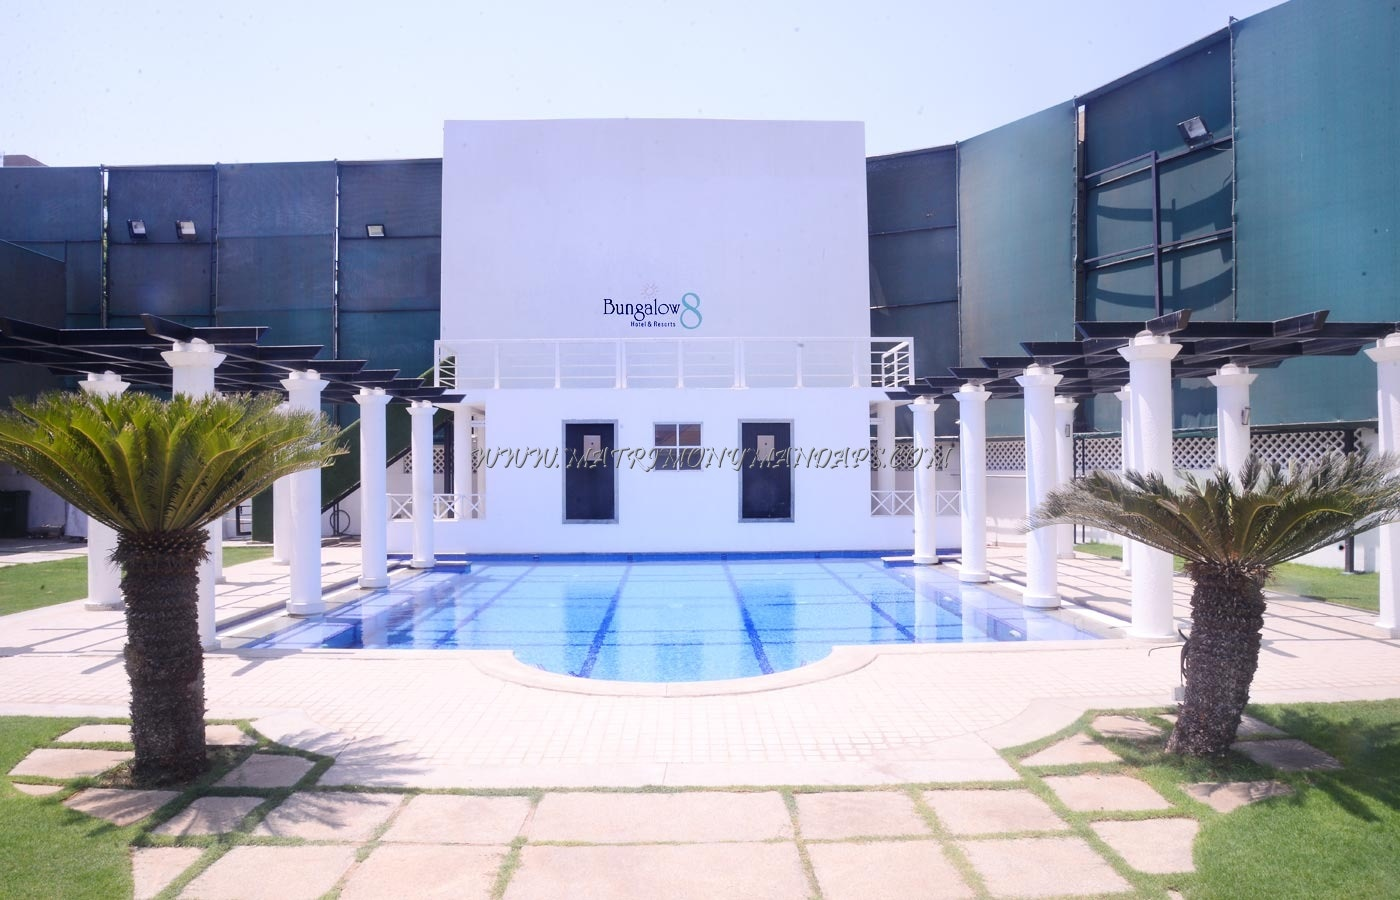 Find the availability of the Bungalow 8 Hotel And Resort - The Grass in Korattur, Chennai and avail special offers